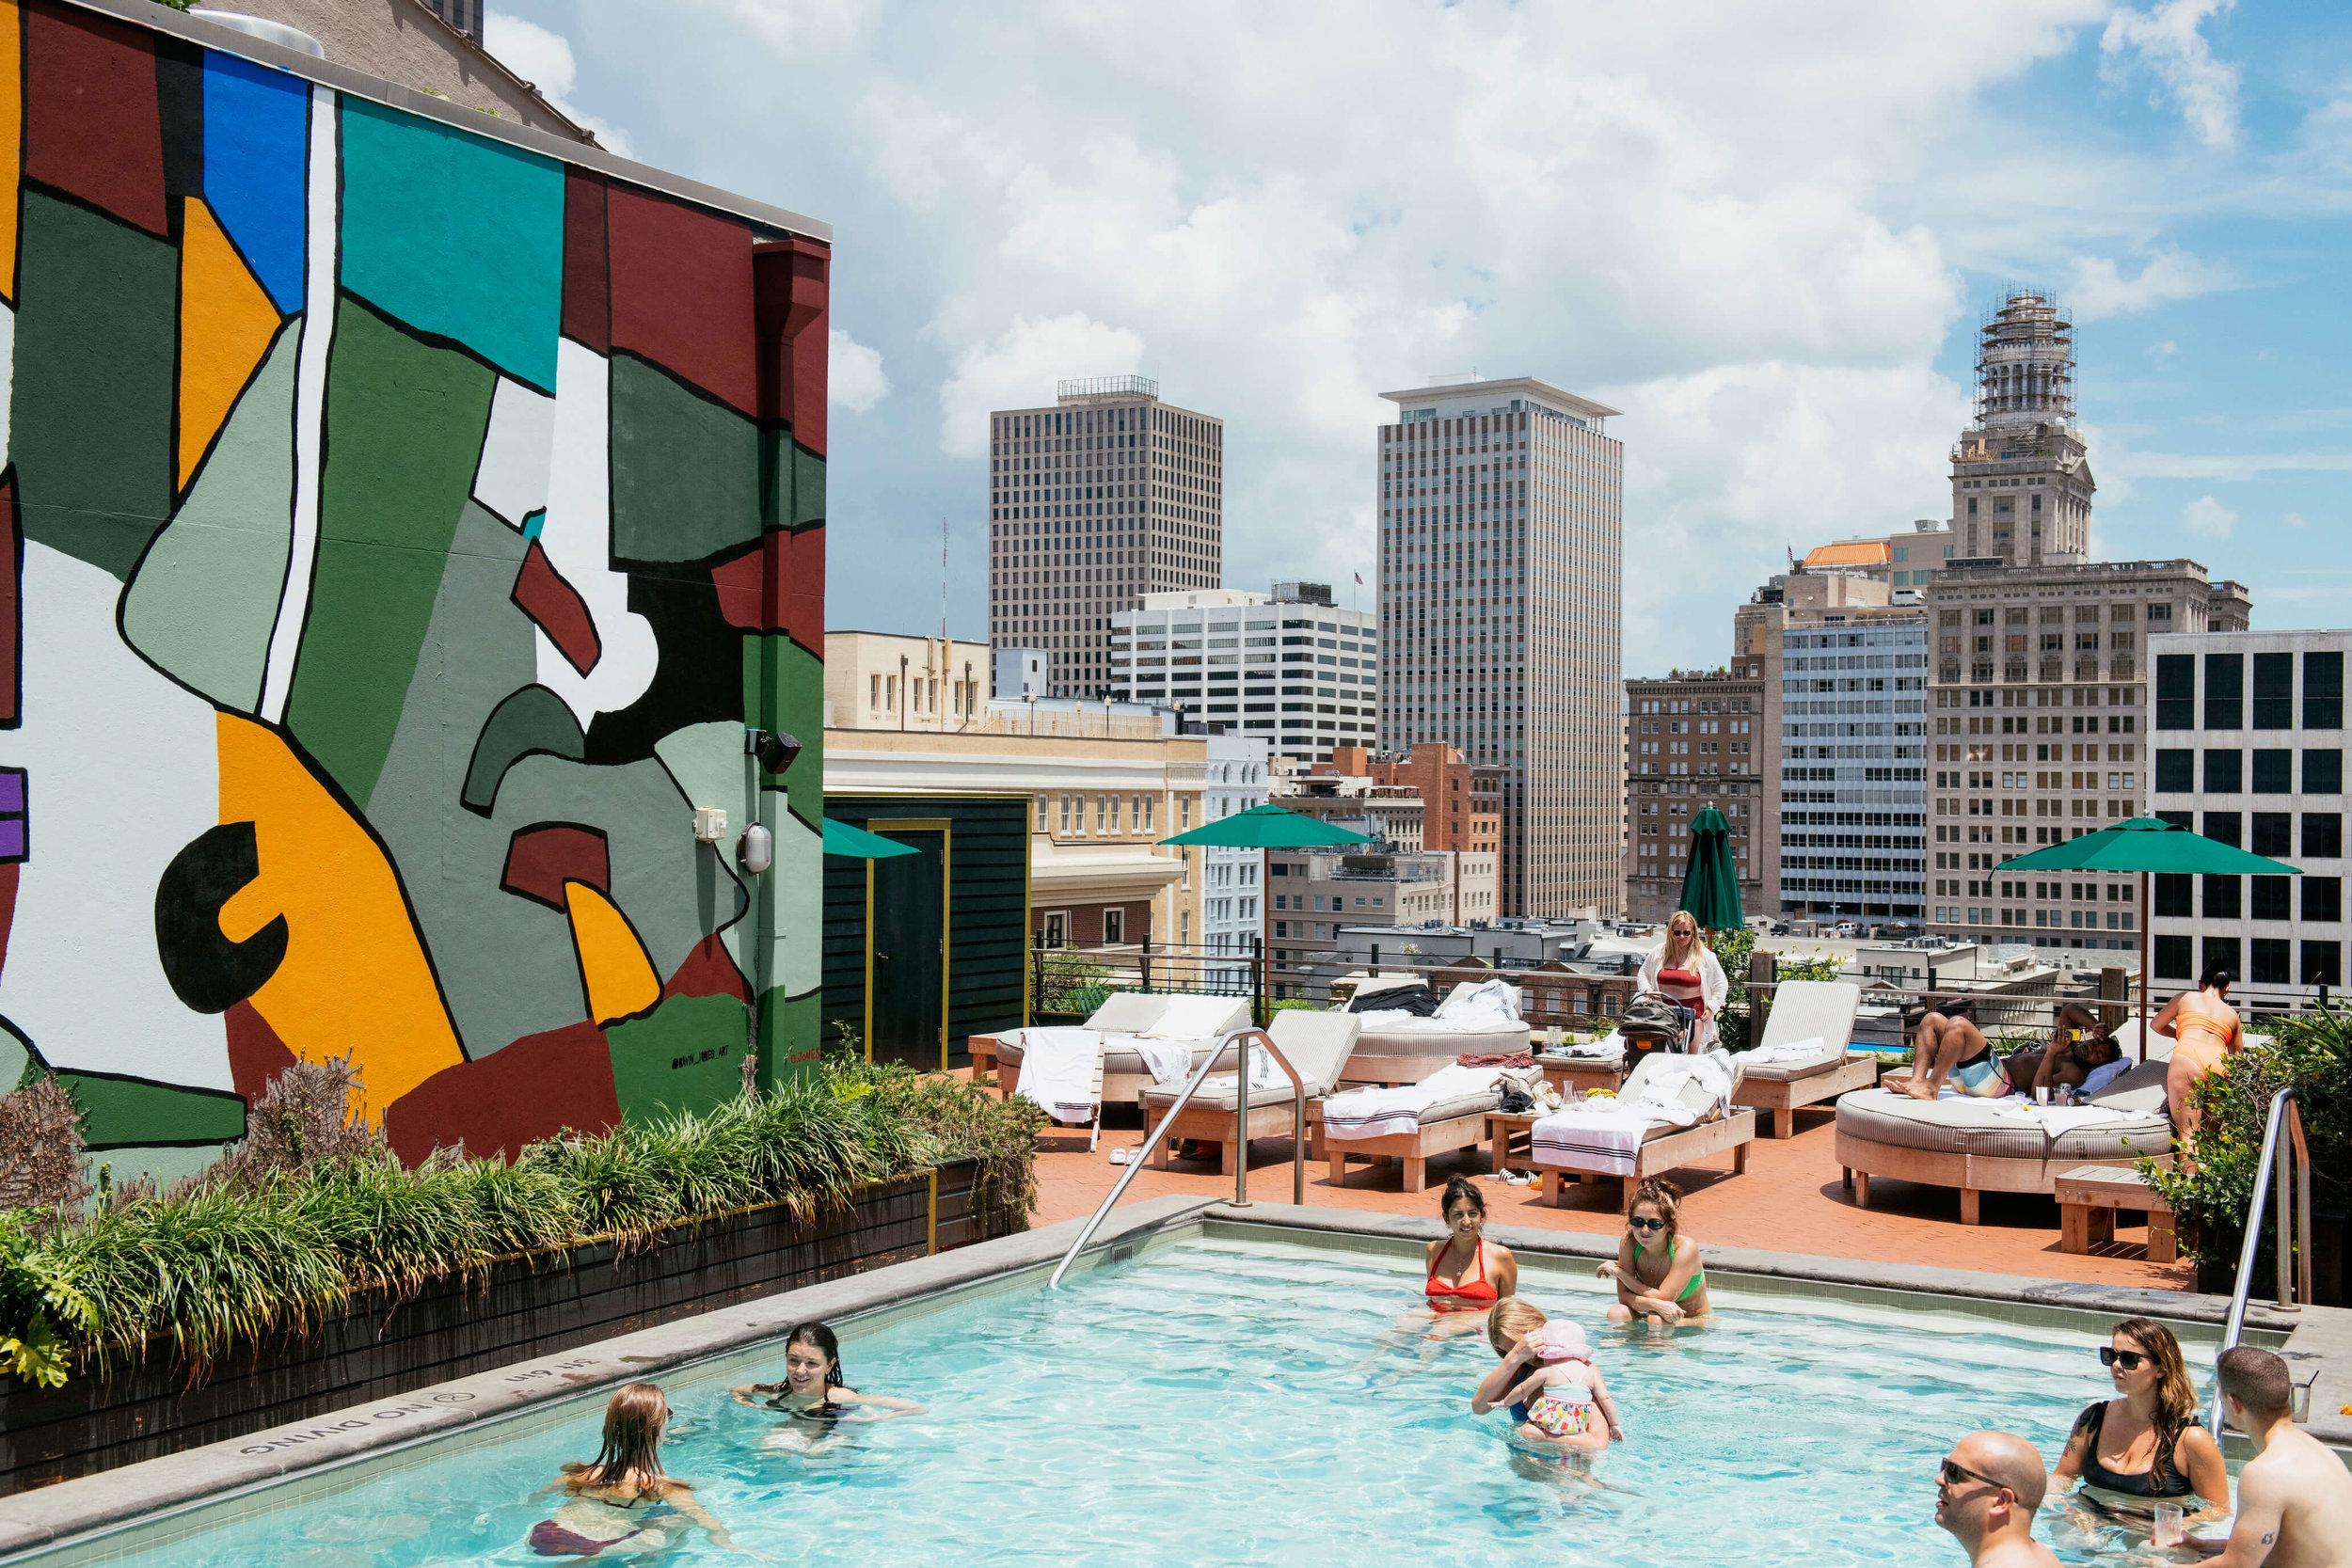 Chilling out at the New Orleans Ace Hotel's Alta roof top pool. Photo credit: Rush Jagoe.